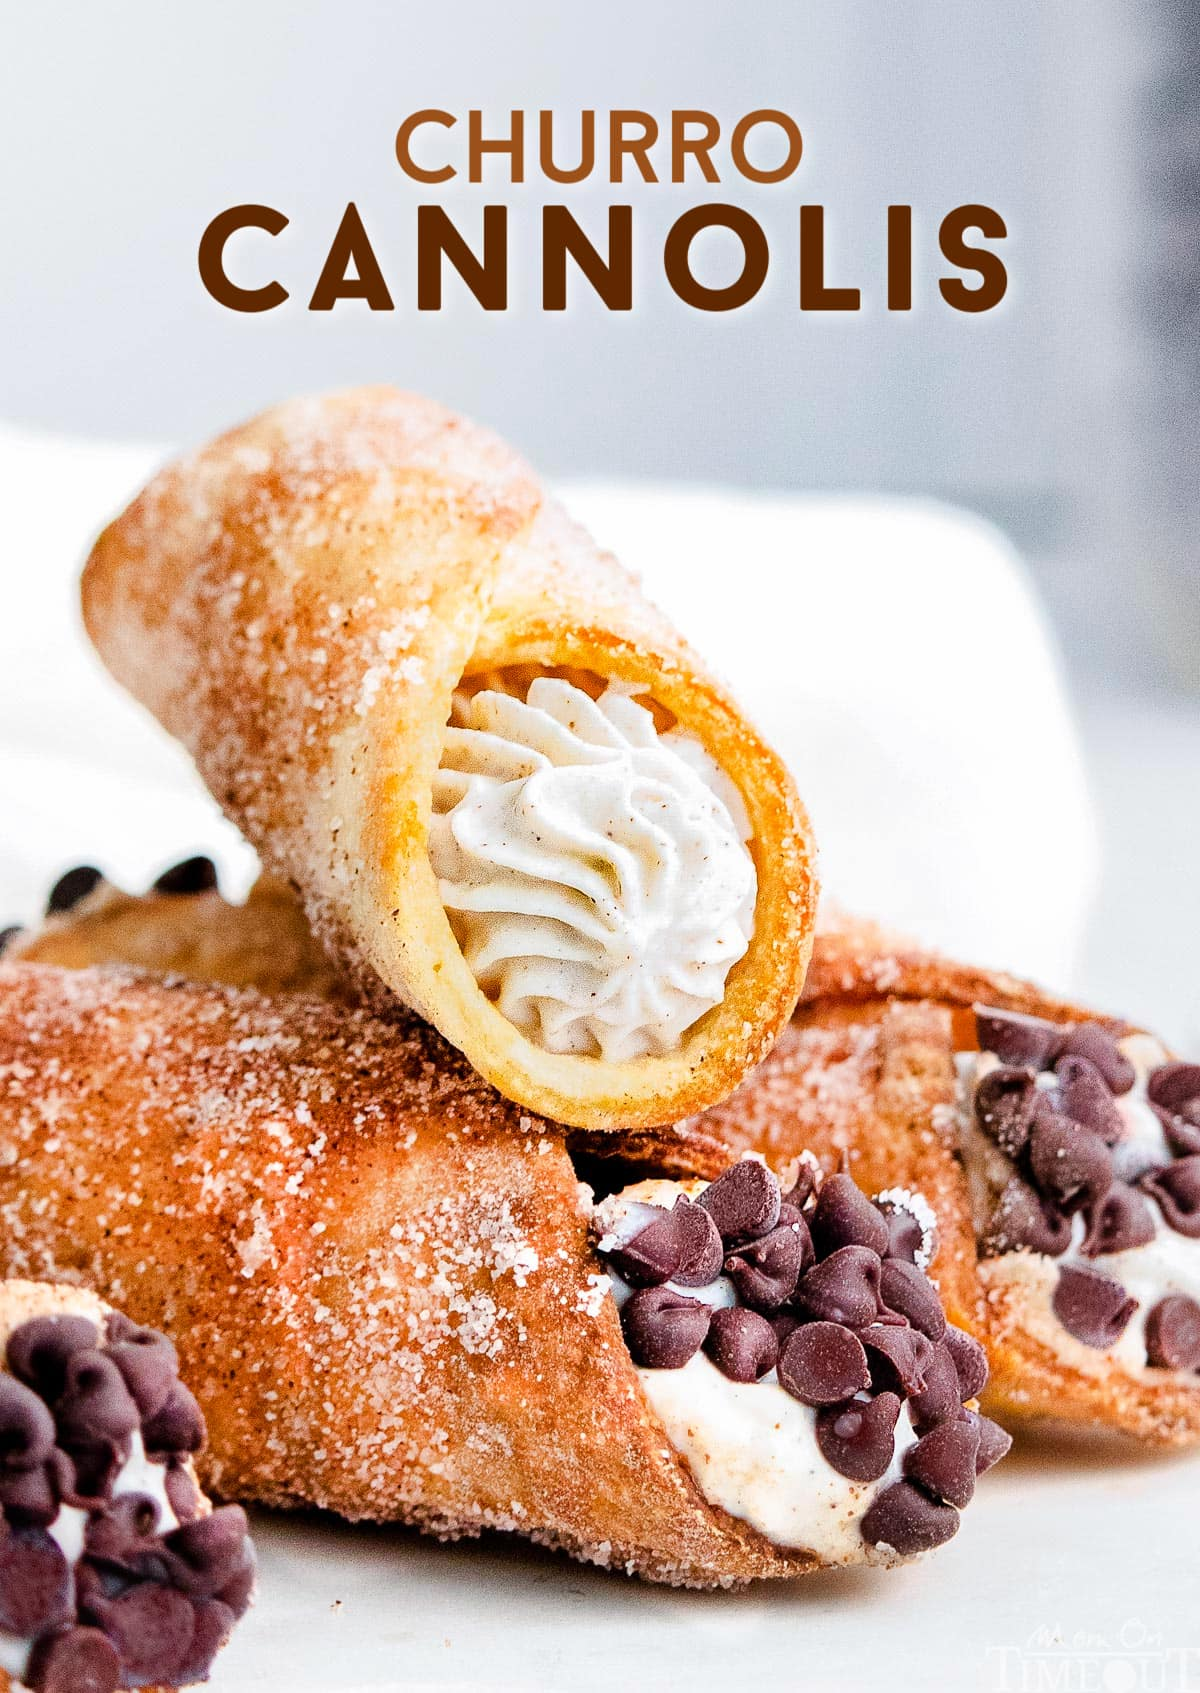 three cannolis sitting on white plate with cannoli filling and chocolate chips.